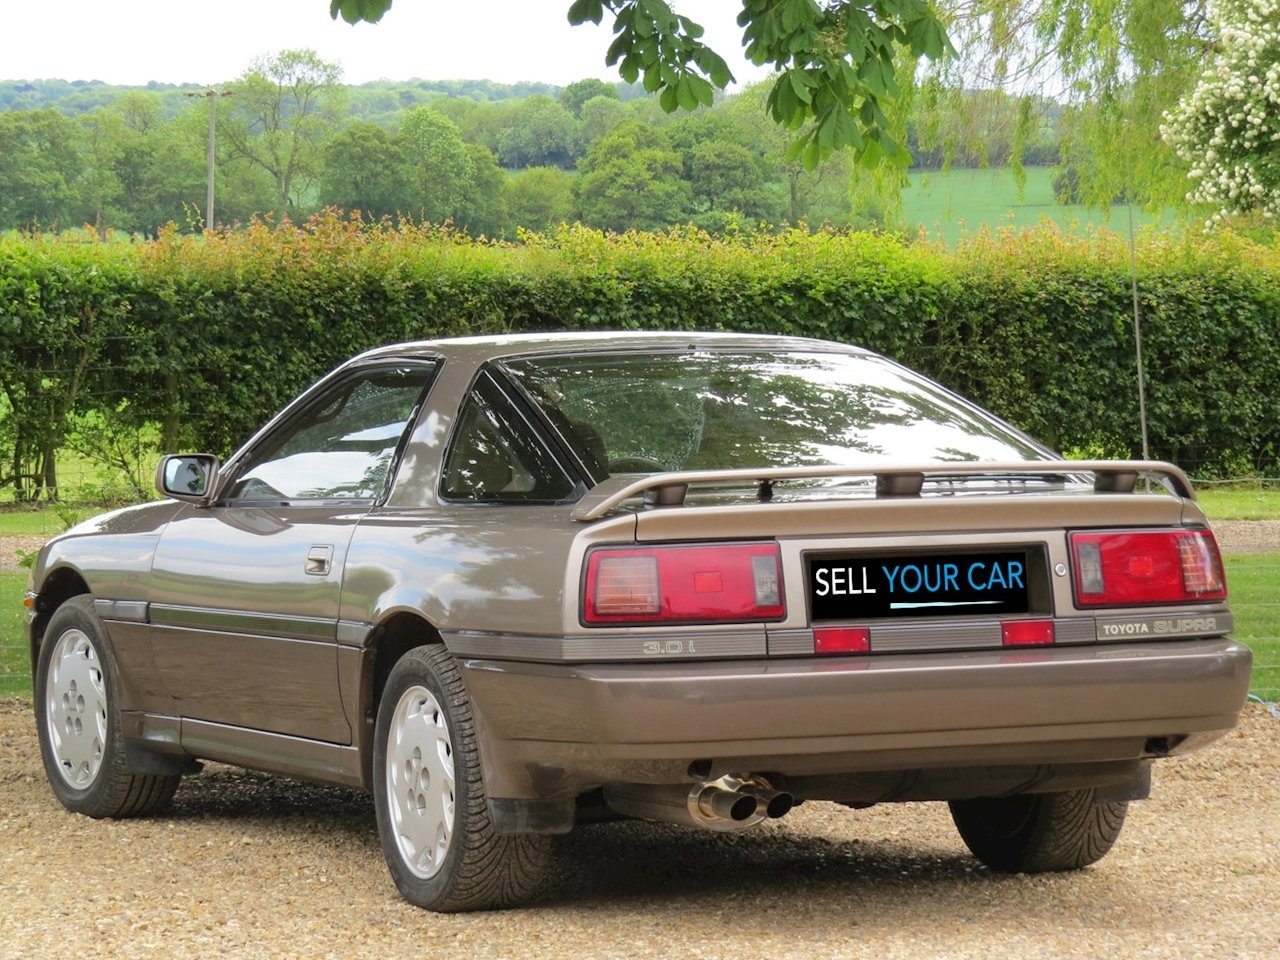 1986 Supra Coupe 3.0 Automatic Petrol For Sale (picture 2 of 6)